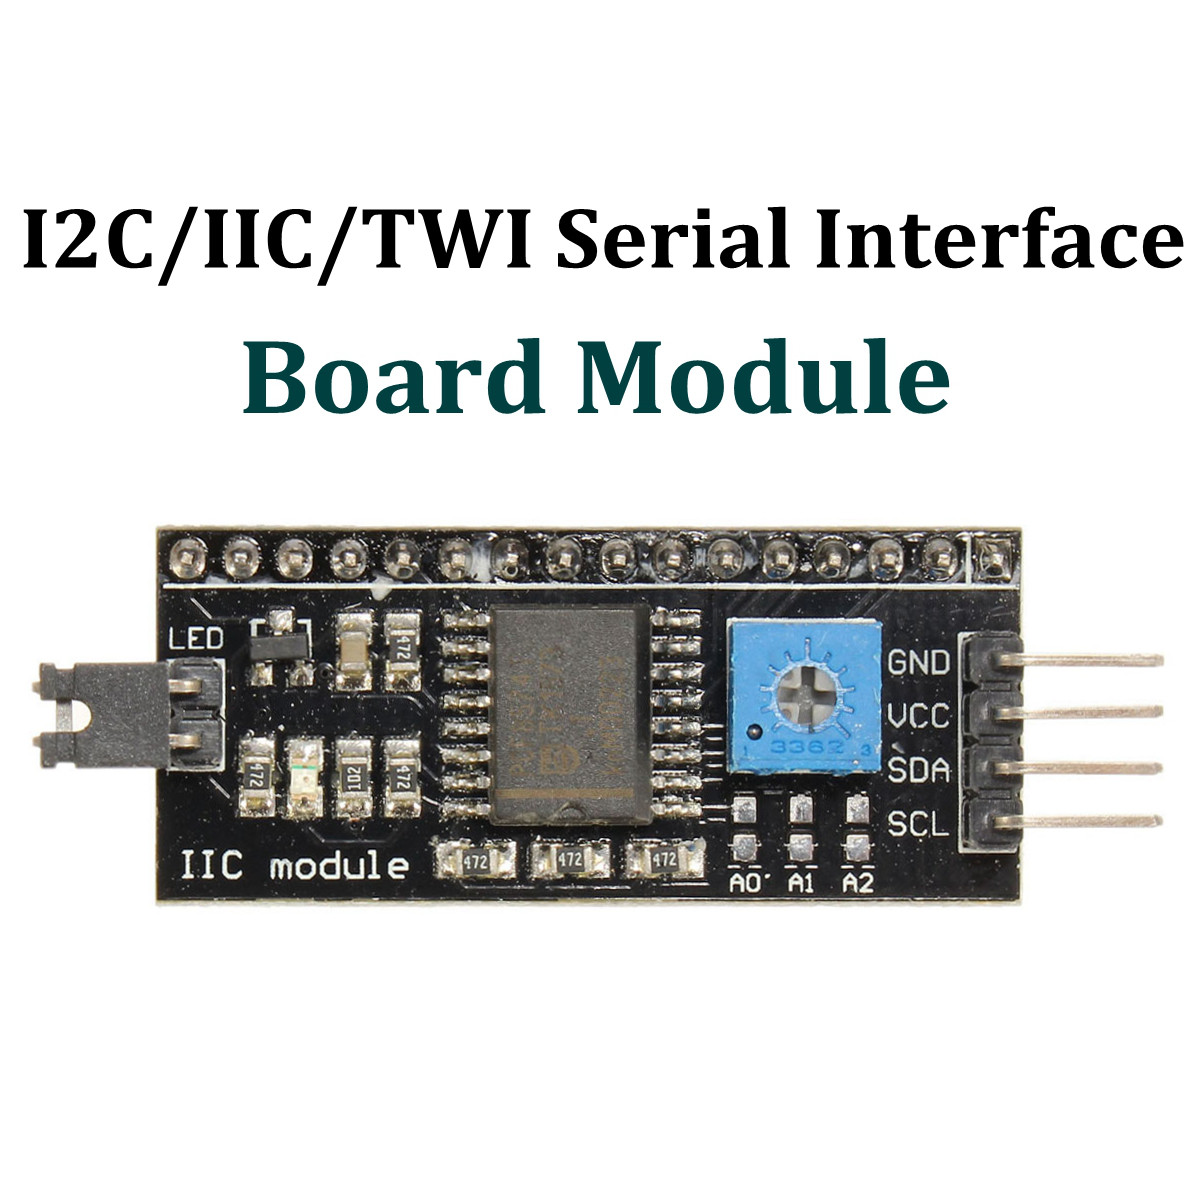 New Arrival I2C/IIC/TWI Serial Interface Board Module for Arduino R3 LCD 1602 Display 54x19 mm 5V Hot Sale